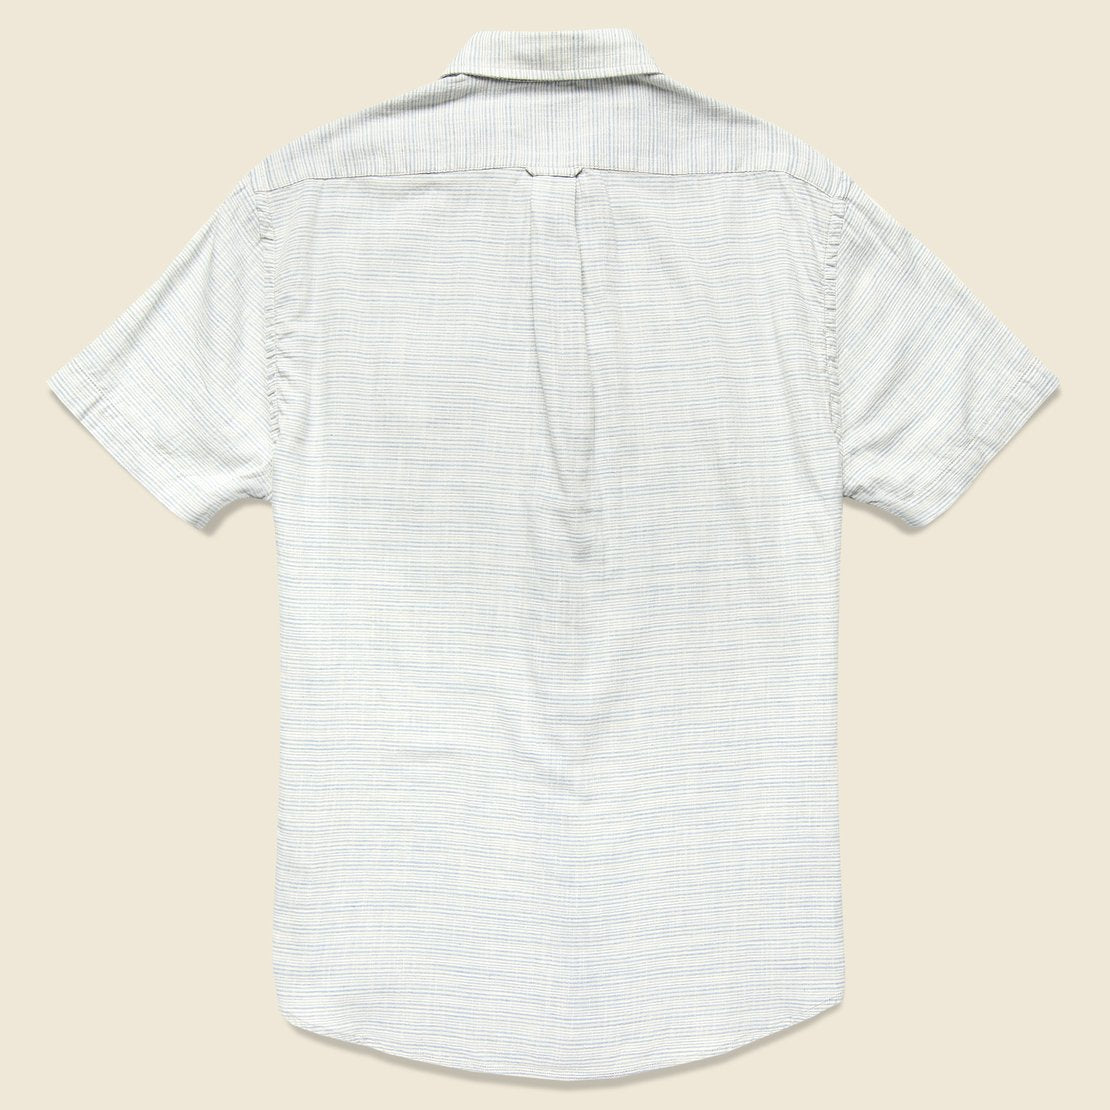 Horizon Summer Twill Shirt - Blue Cream Stripe